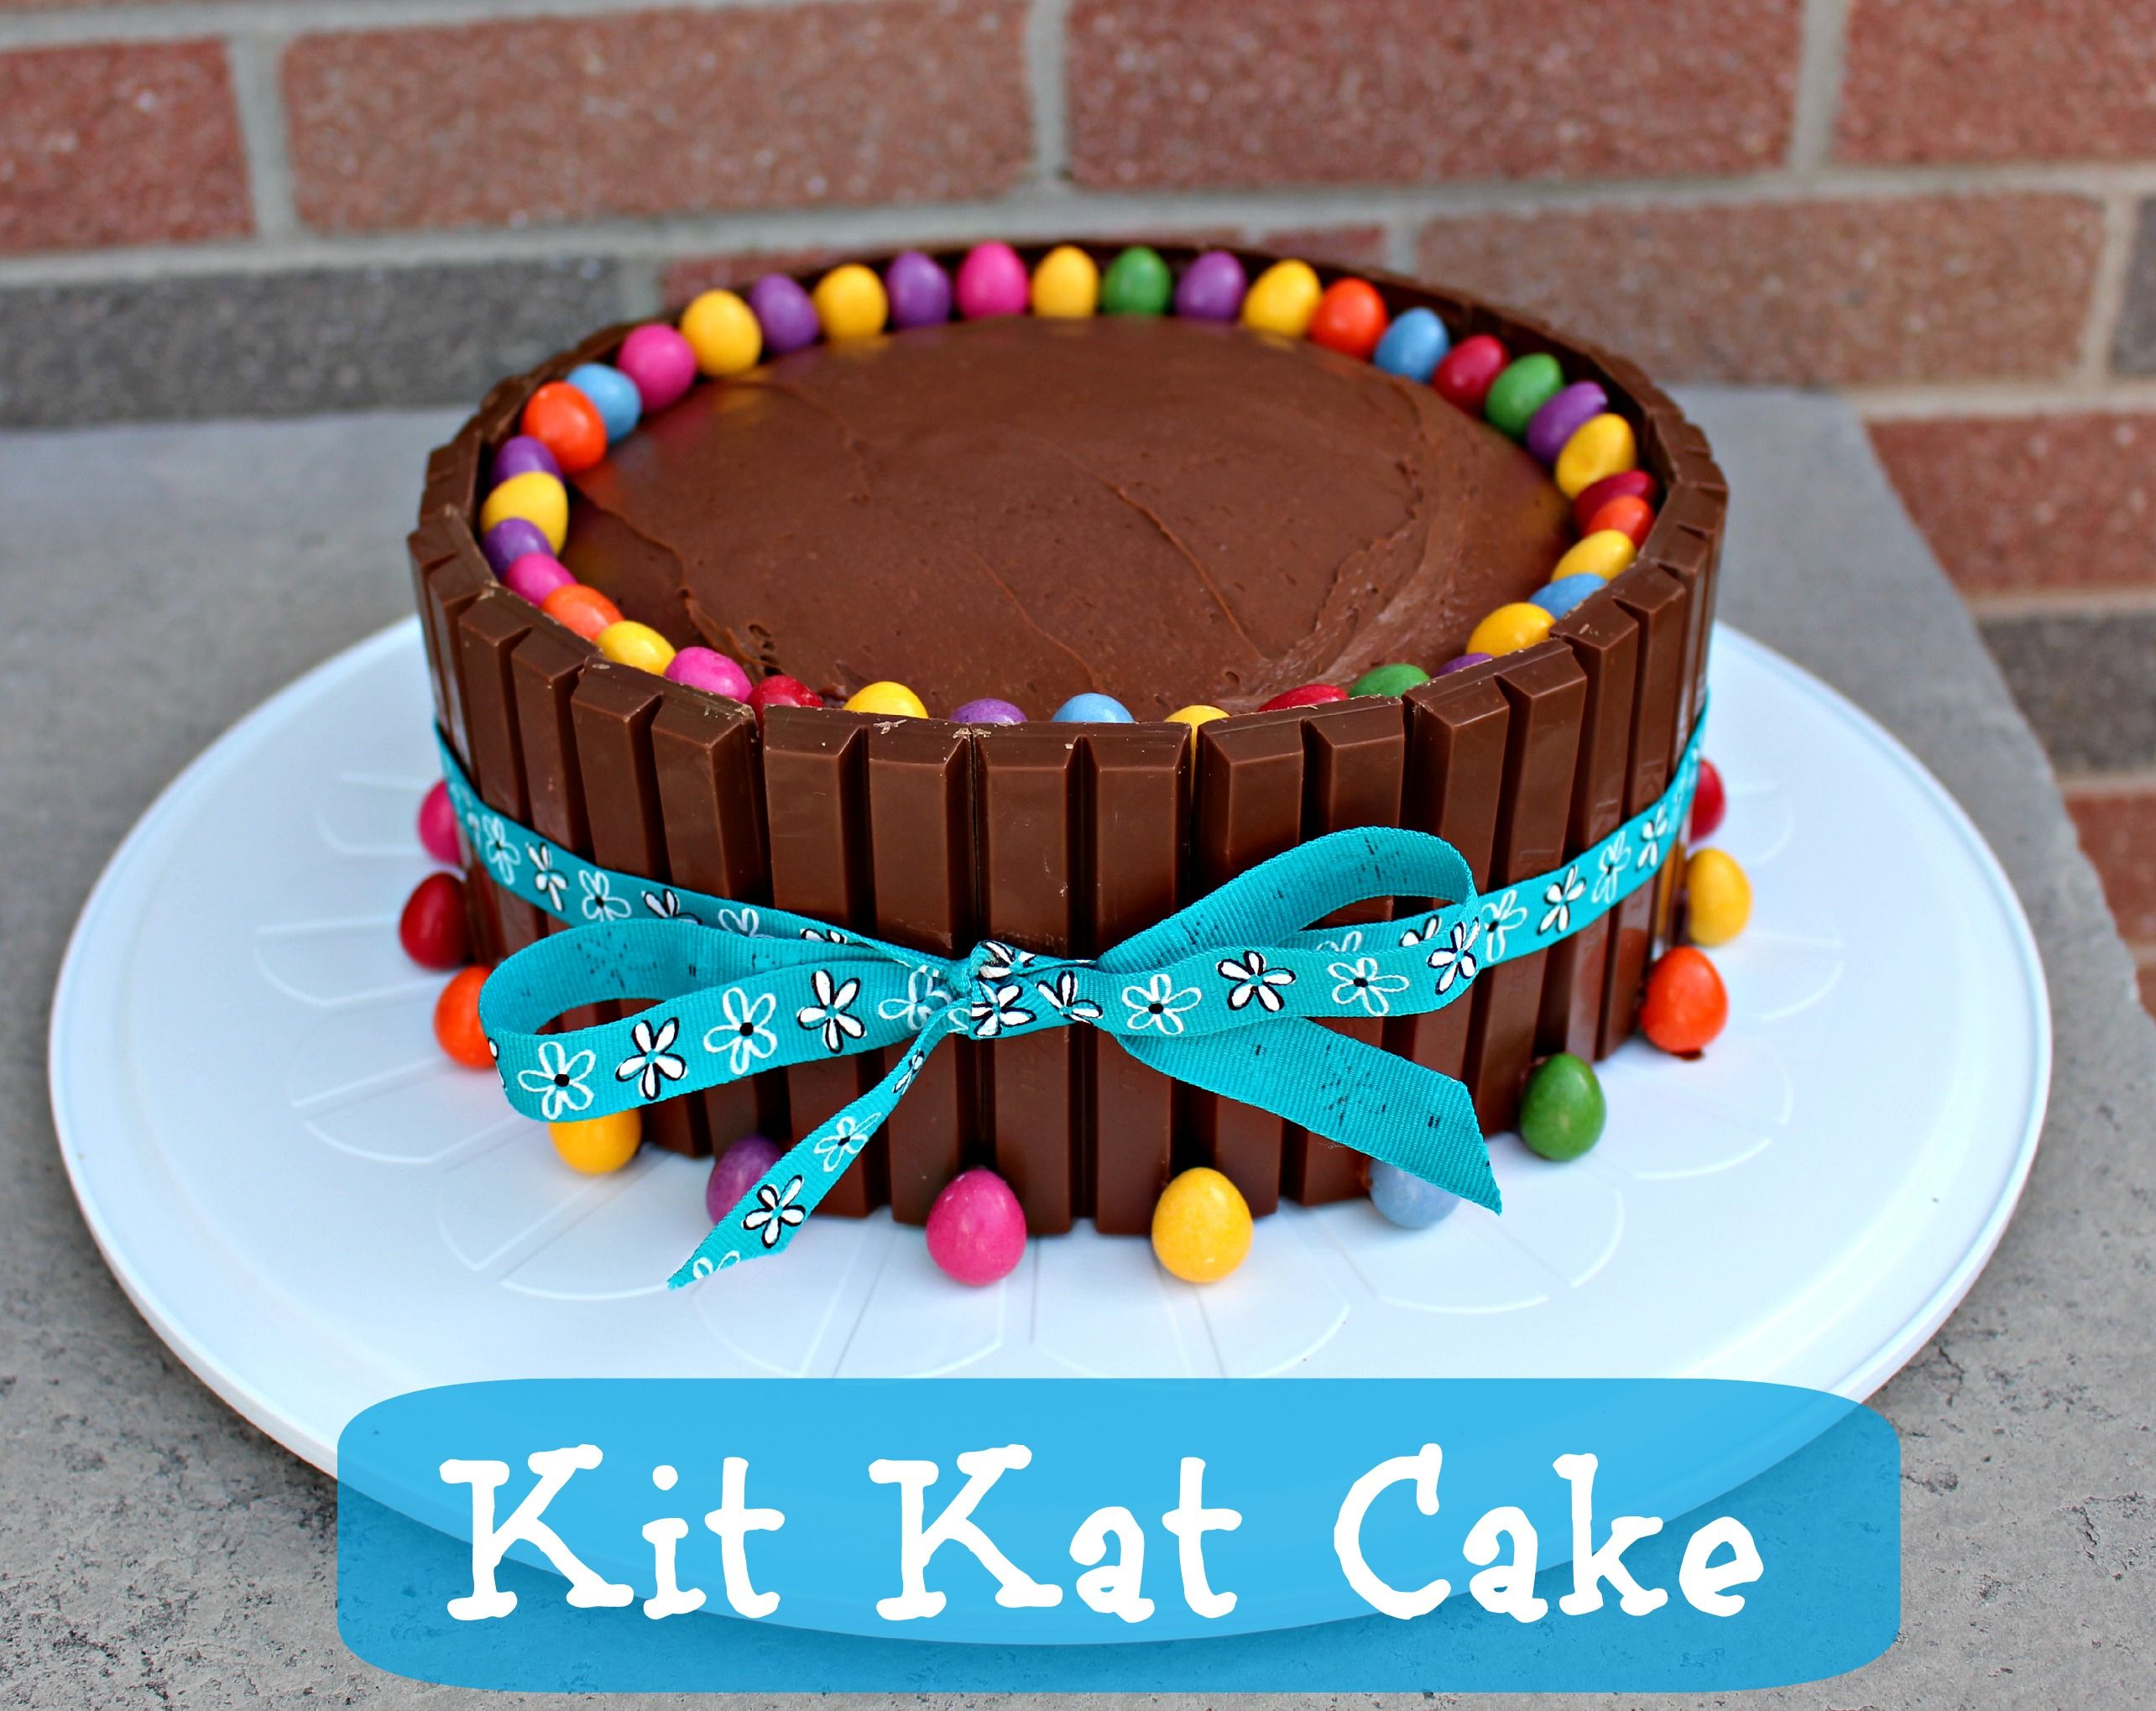 Kit Kat Cake Recipe Cakes Homemade Birthday Cakes Birthday